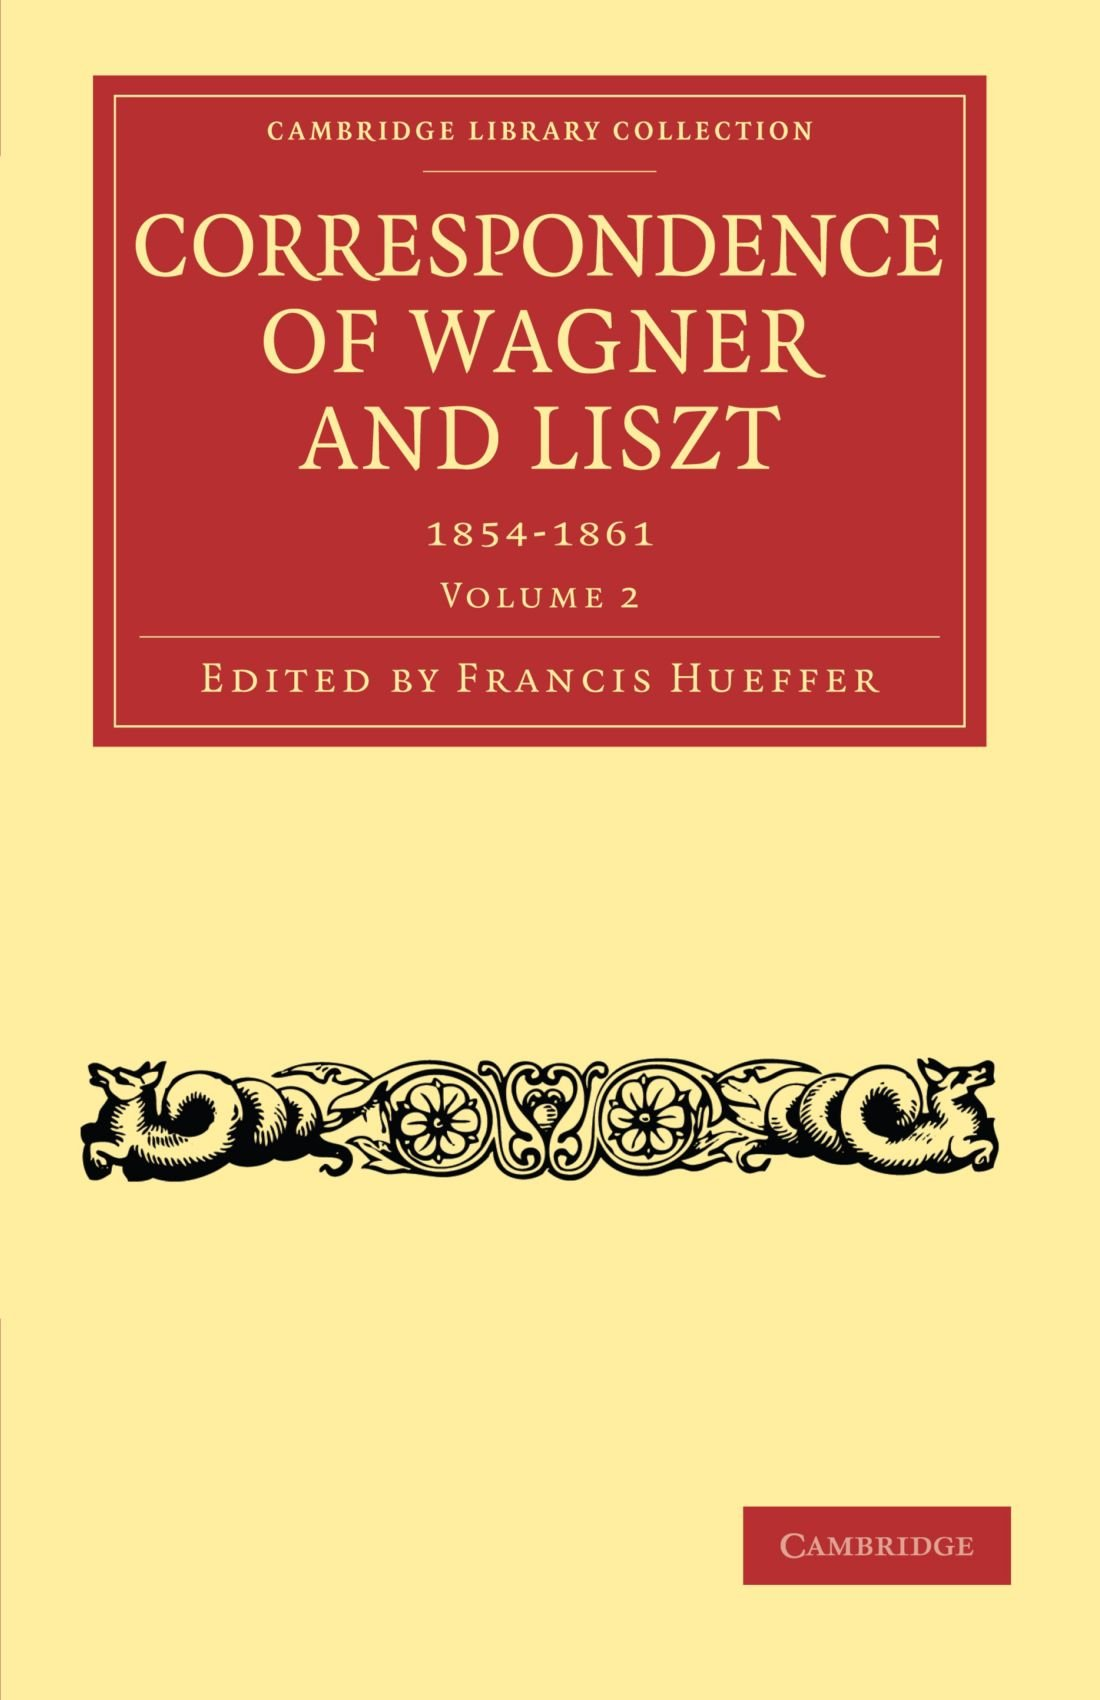 Correspondence of Wagner and Liszt (Cambridge Library Collection - Music) ebook